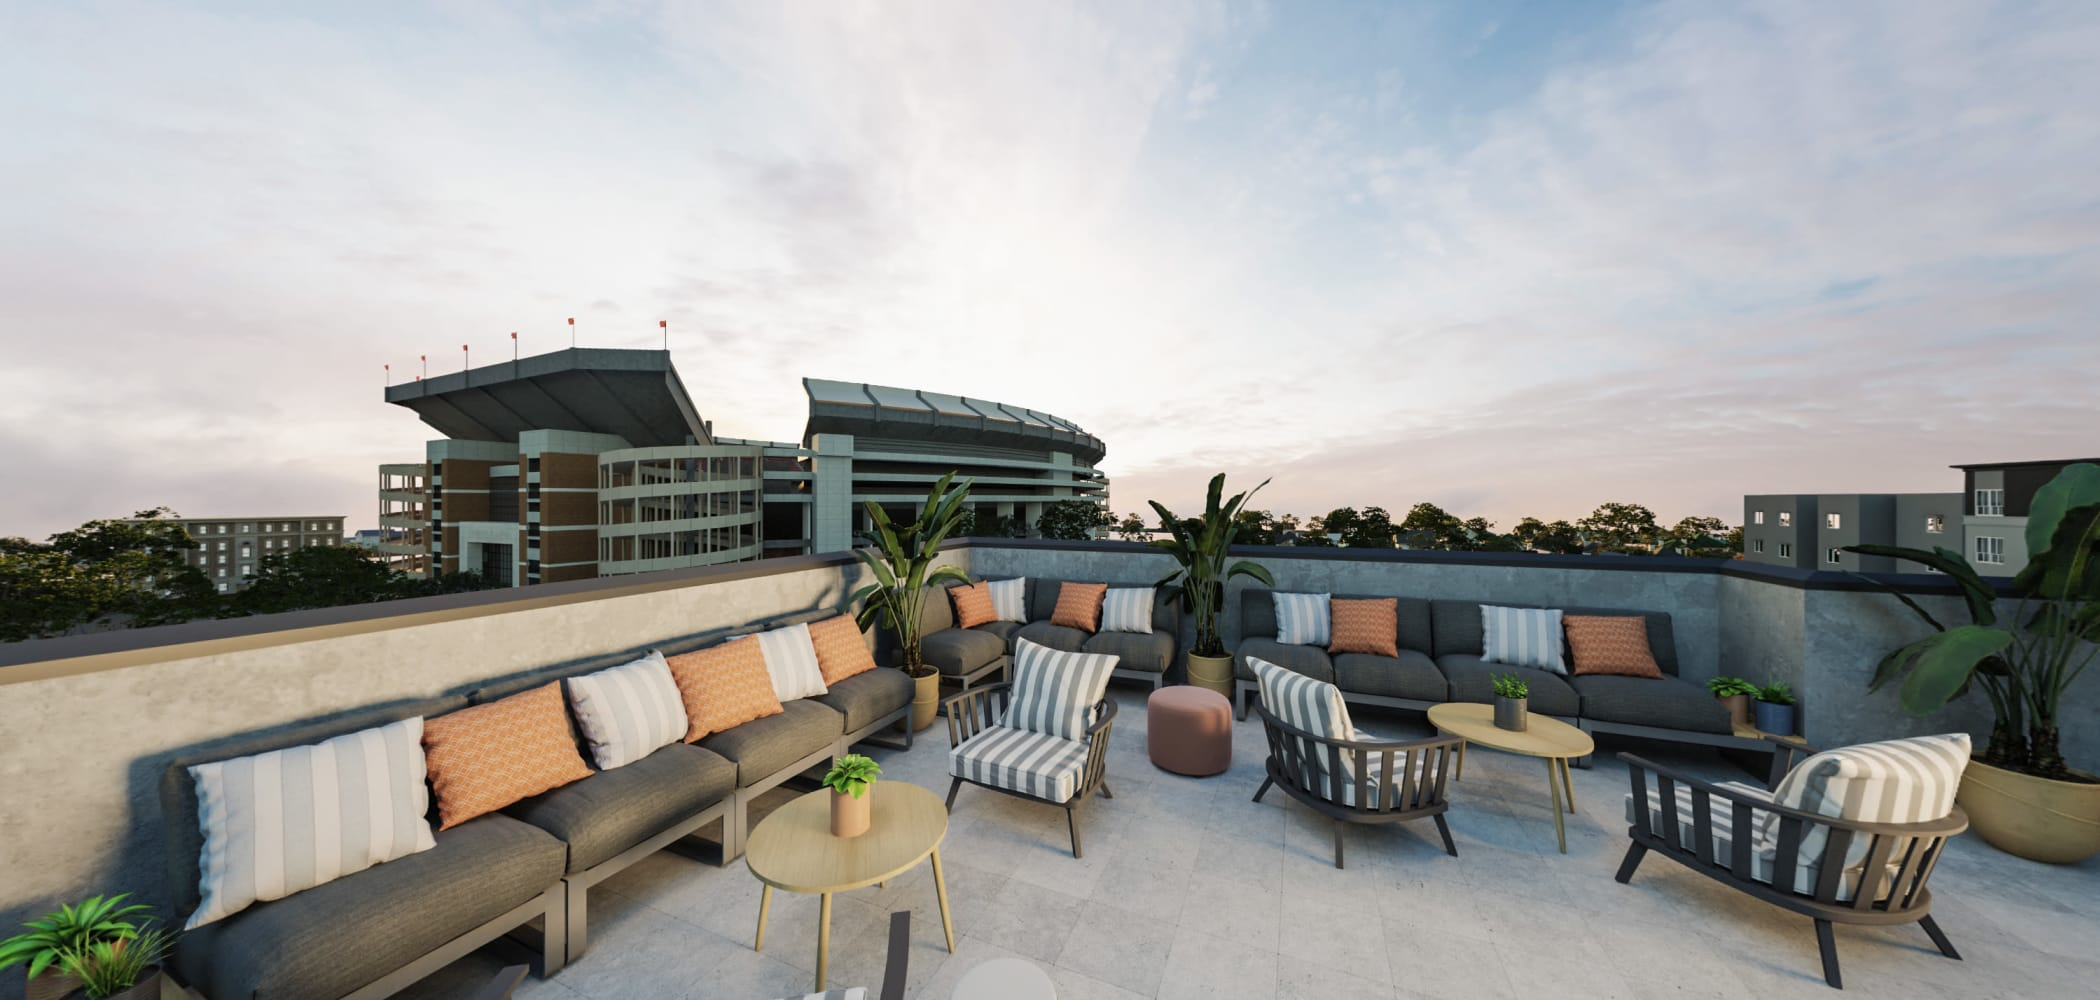 Rooftop lounge with comfy couches at HERE Tuscaloosa in Tuscaloosa, Alabama